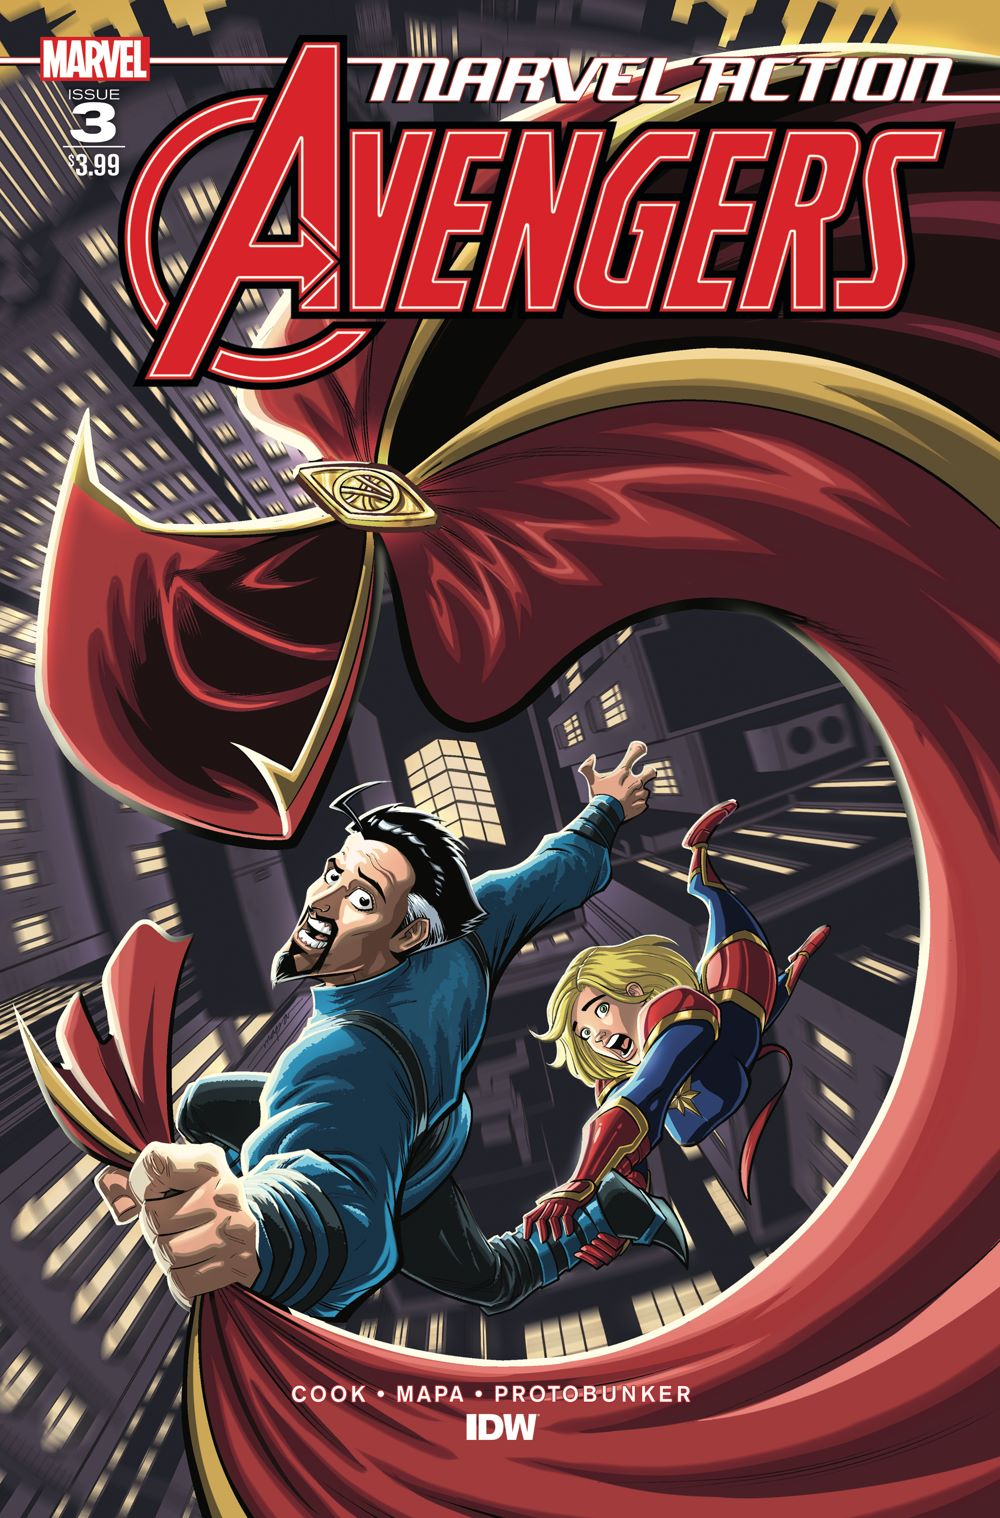 Marvel_Avengers03_coverA ComicList: IDW Publishing New Releases for 01/06/2021